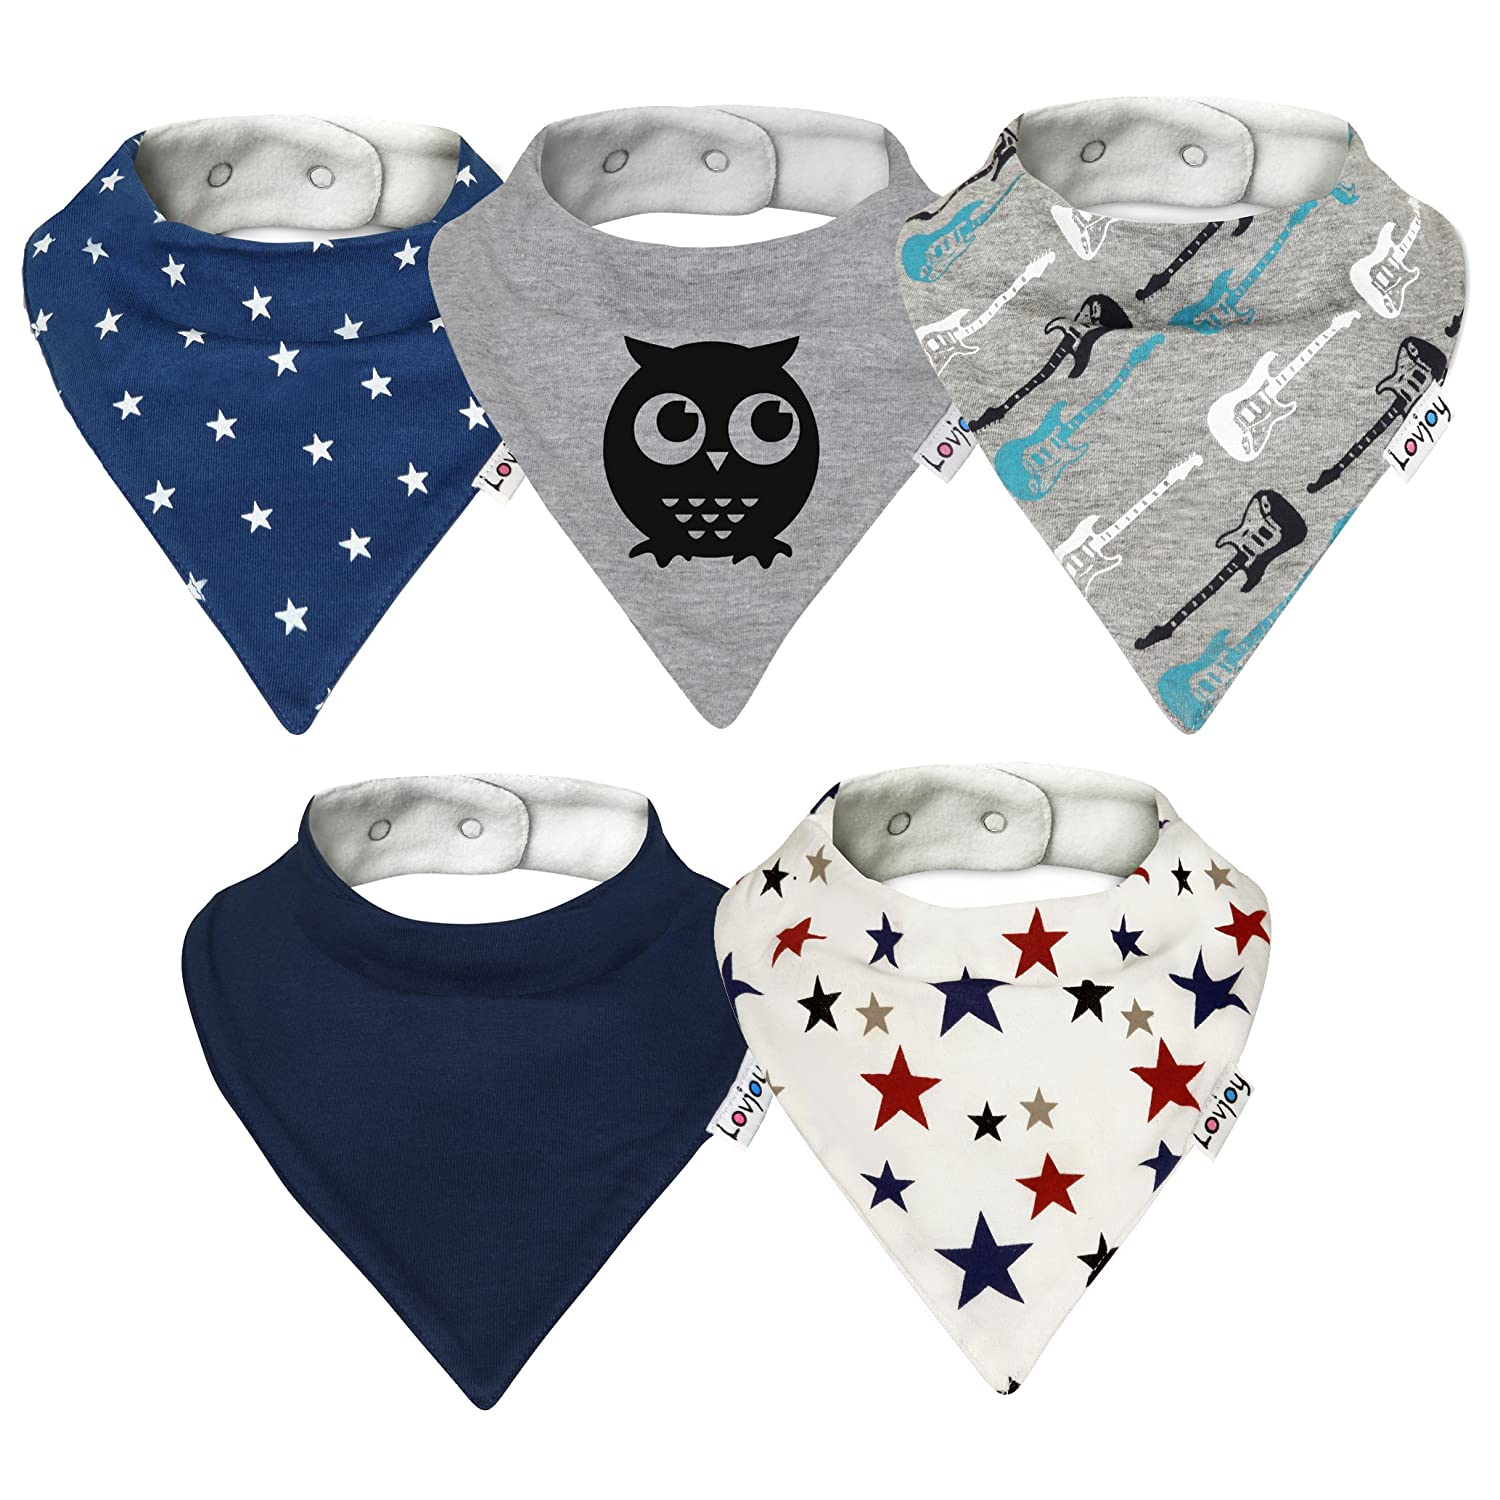 Lovjoy Bandana Dribble bibs, Super Absorbent & Soft for Teething Babies , Fits Newborn to 3 years, Adjustable Snaps, Best Baby Gift. 5 PACK (LITTLE STAR)